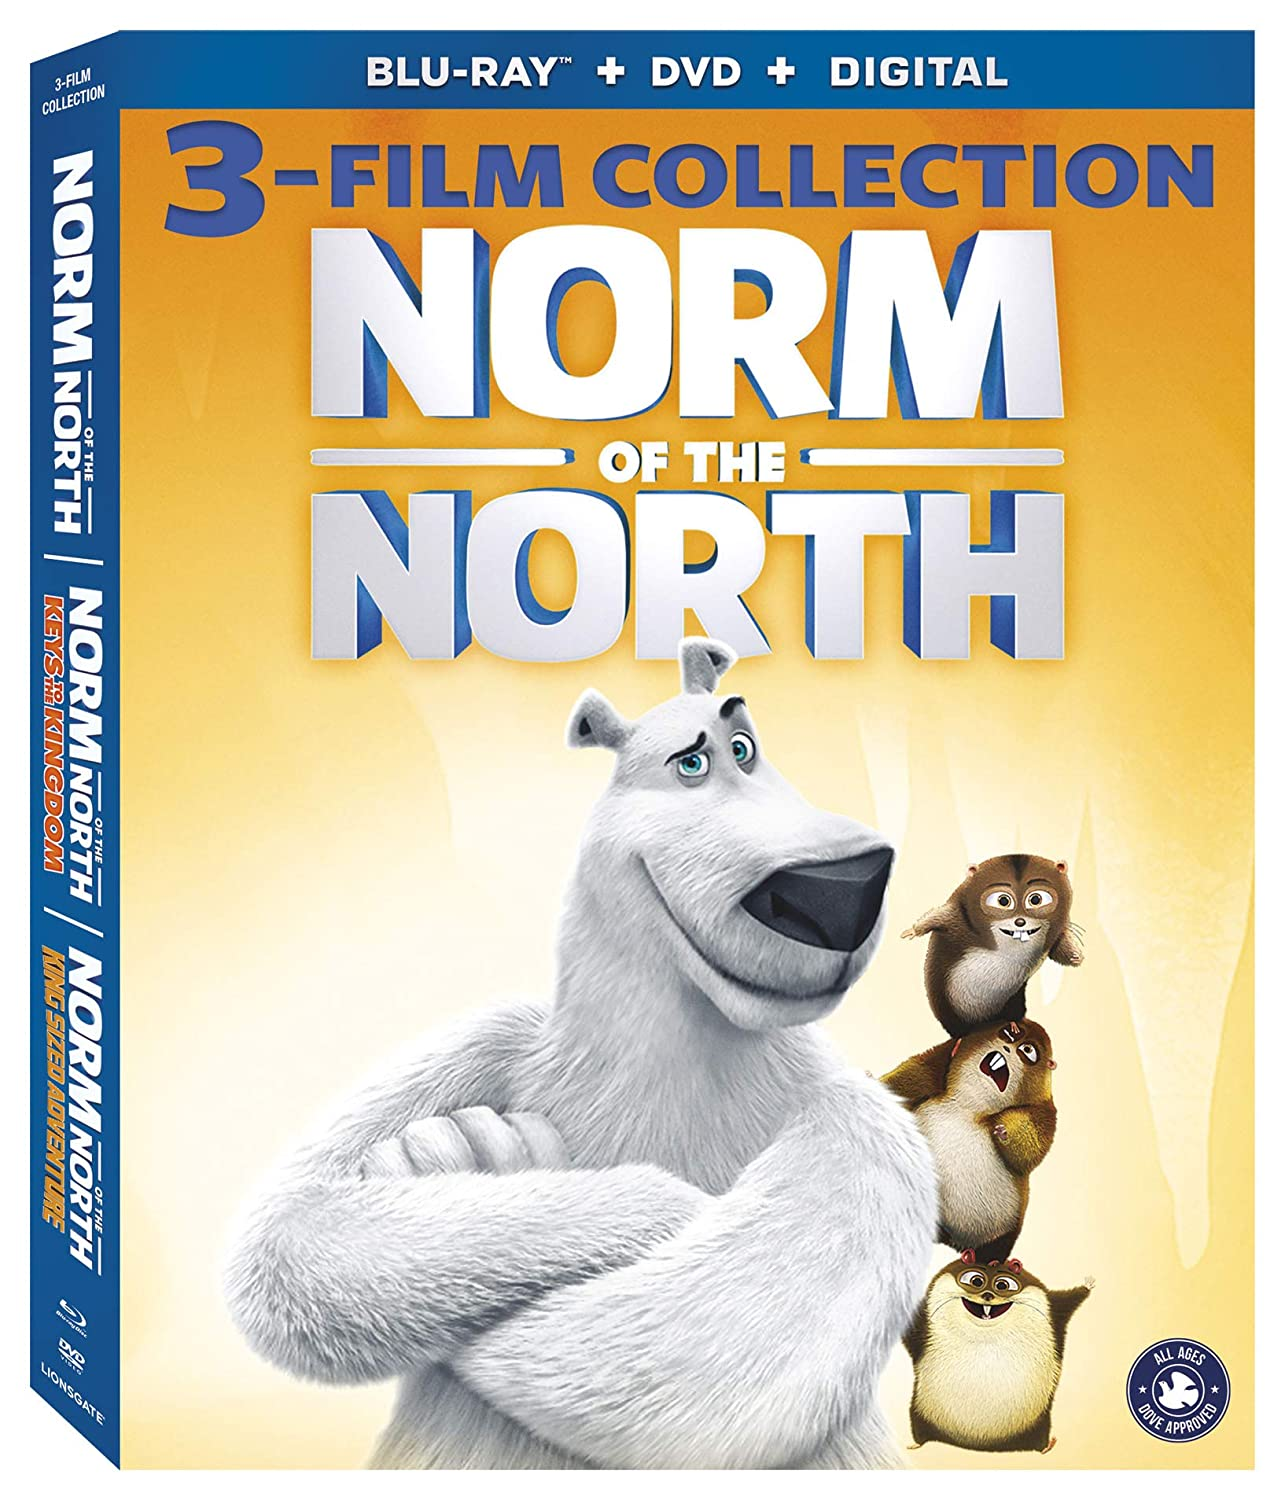 Amazon Com Norm Of The North 3 Film Coll Blu Ray Rob Schneider Heather Graham Bill Nighy Zachary Gordon Ken Jeong Colm Meaney Movies Tv